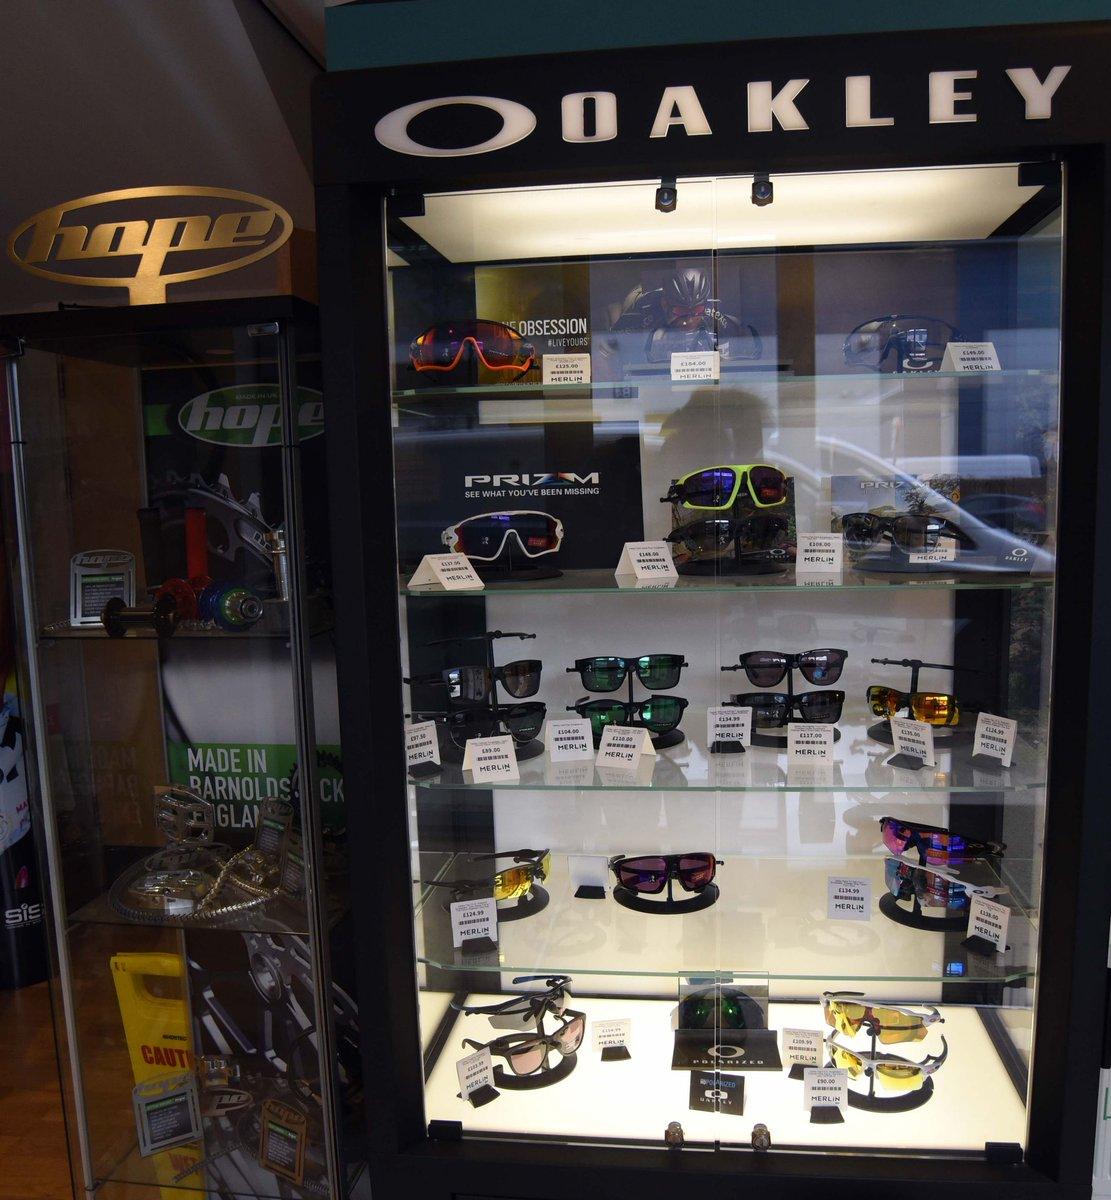 f1014de2f5 ... Oakley sunglasses just one of the brands! Huge range available of this  specialist cycling & casual sunglasses #oakleysunglasses #oakleycycling  Link: ...